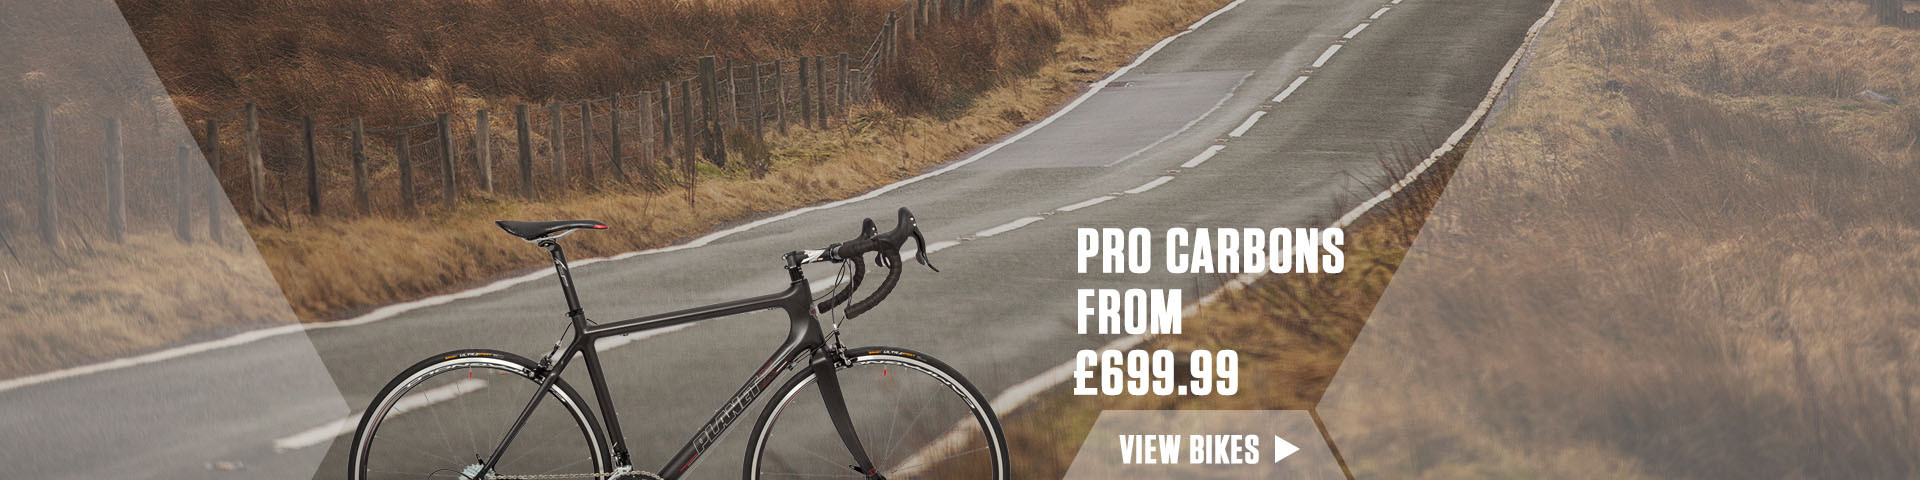 Pro Carbon From 799.99